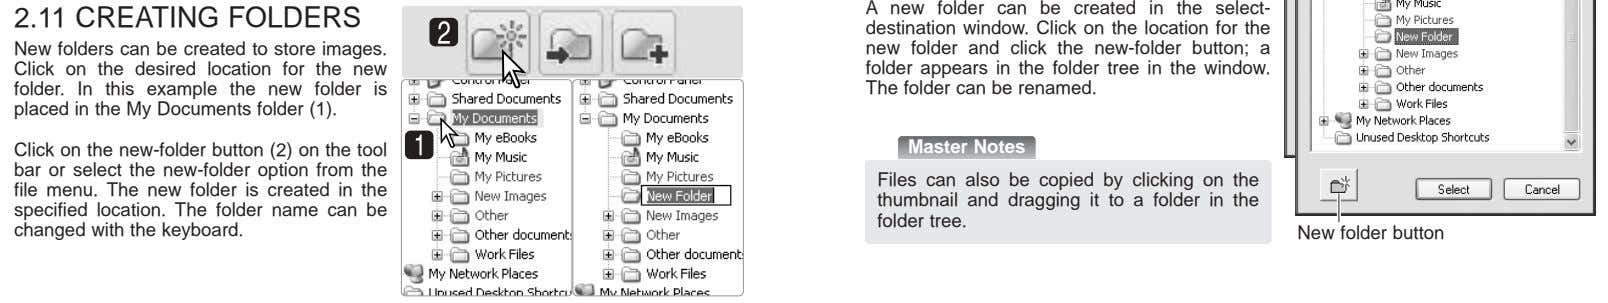 A new folder can be created in the select- 2.11 CREATING FOLDERS destination window. Click